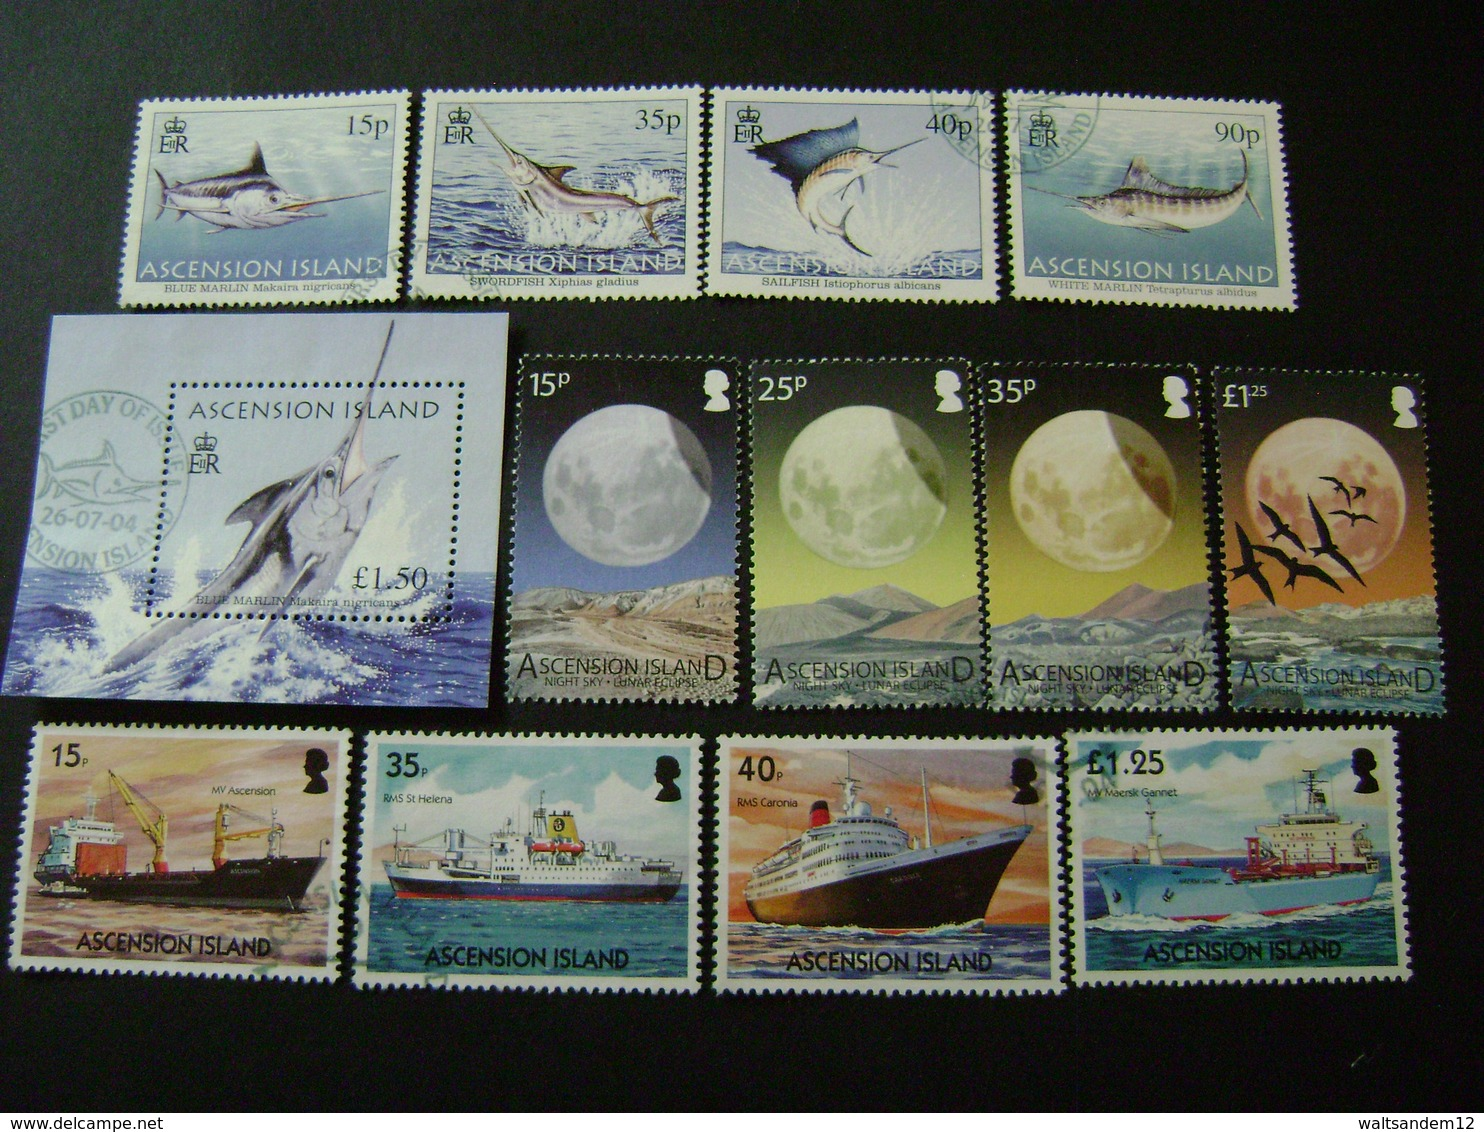 Ascension Island 2004 Commemorative Issues - Used - Ascension